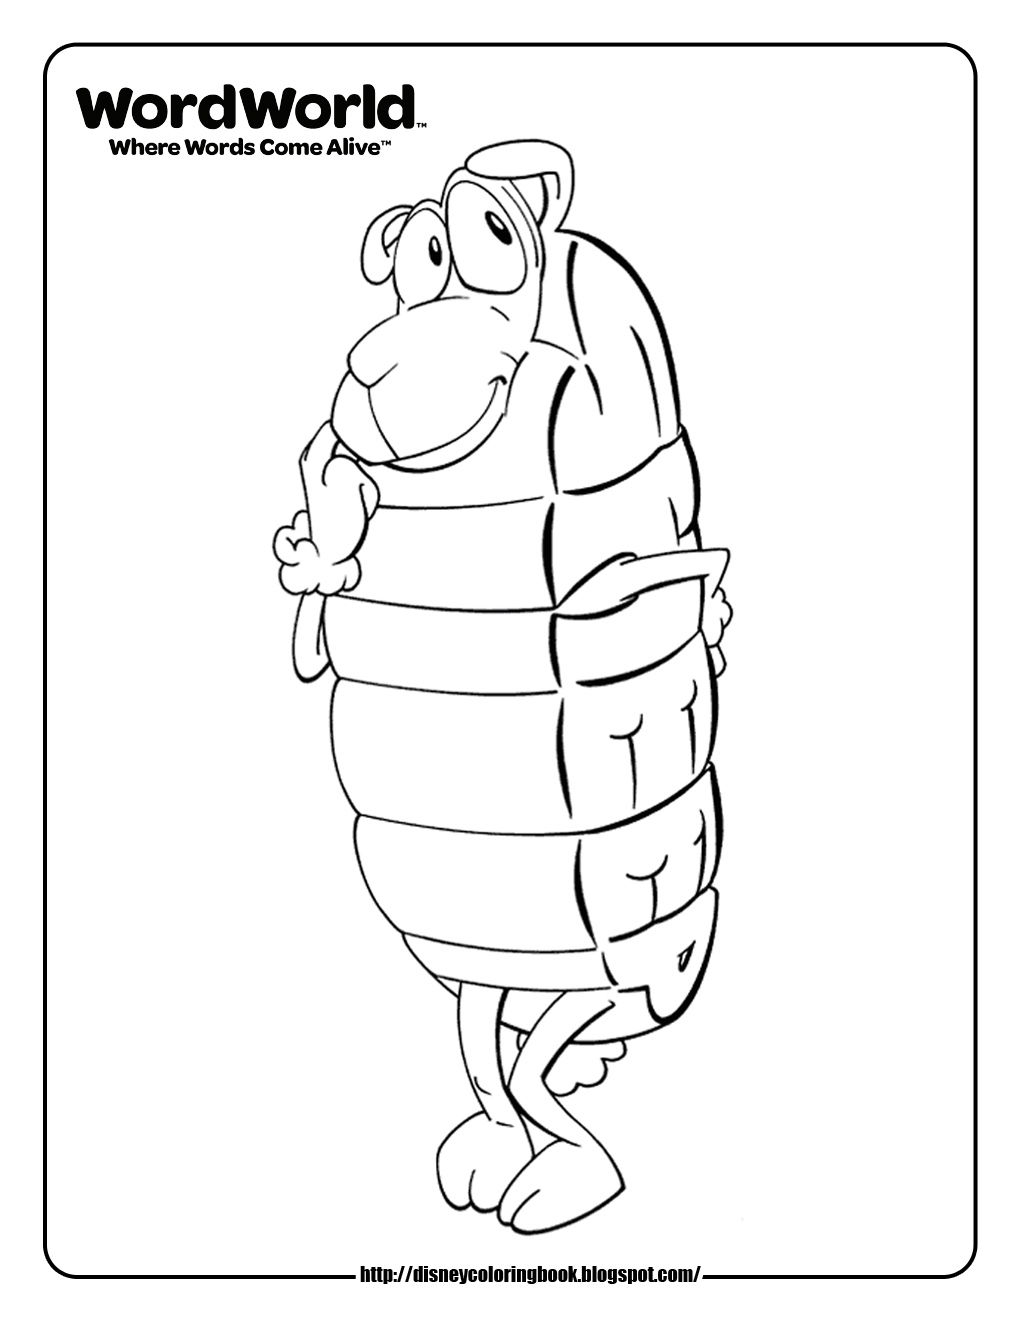 wordworld 2 free disney coloring sheets learn to coloring